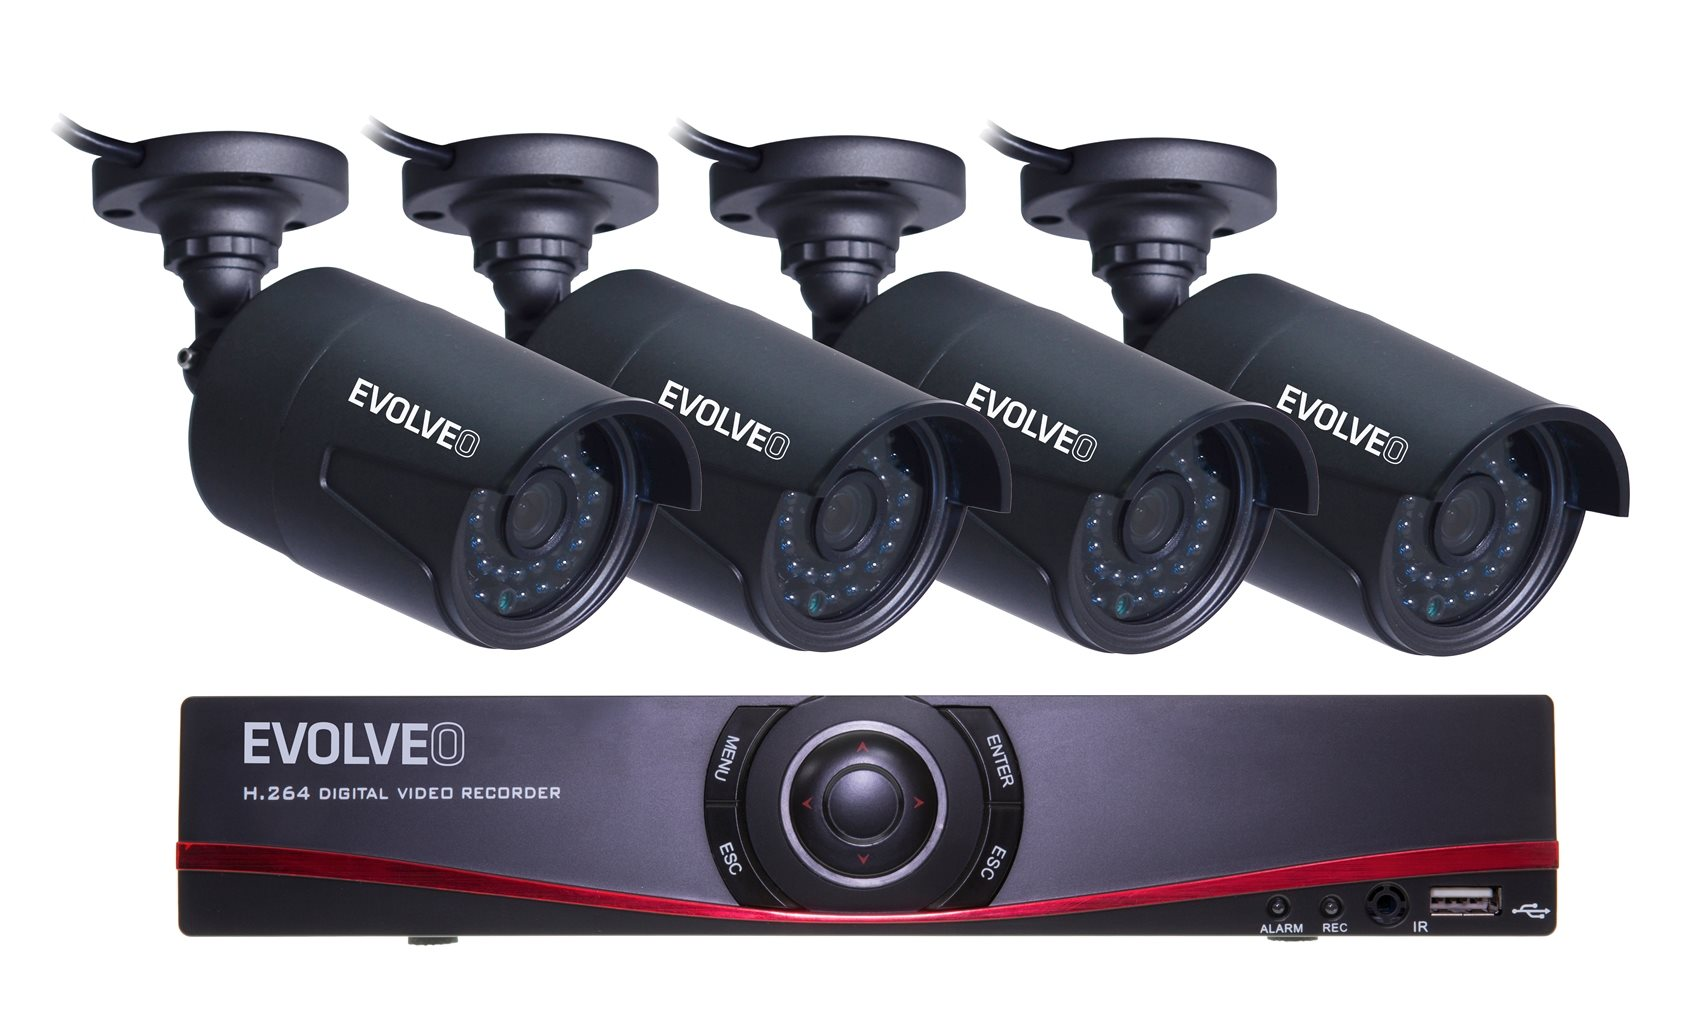 EVOLVEO Detective D04, NVR security monitoring system]